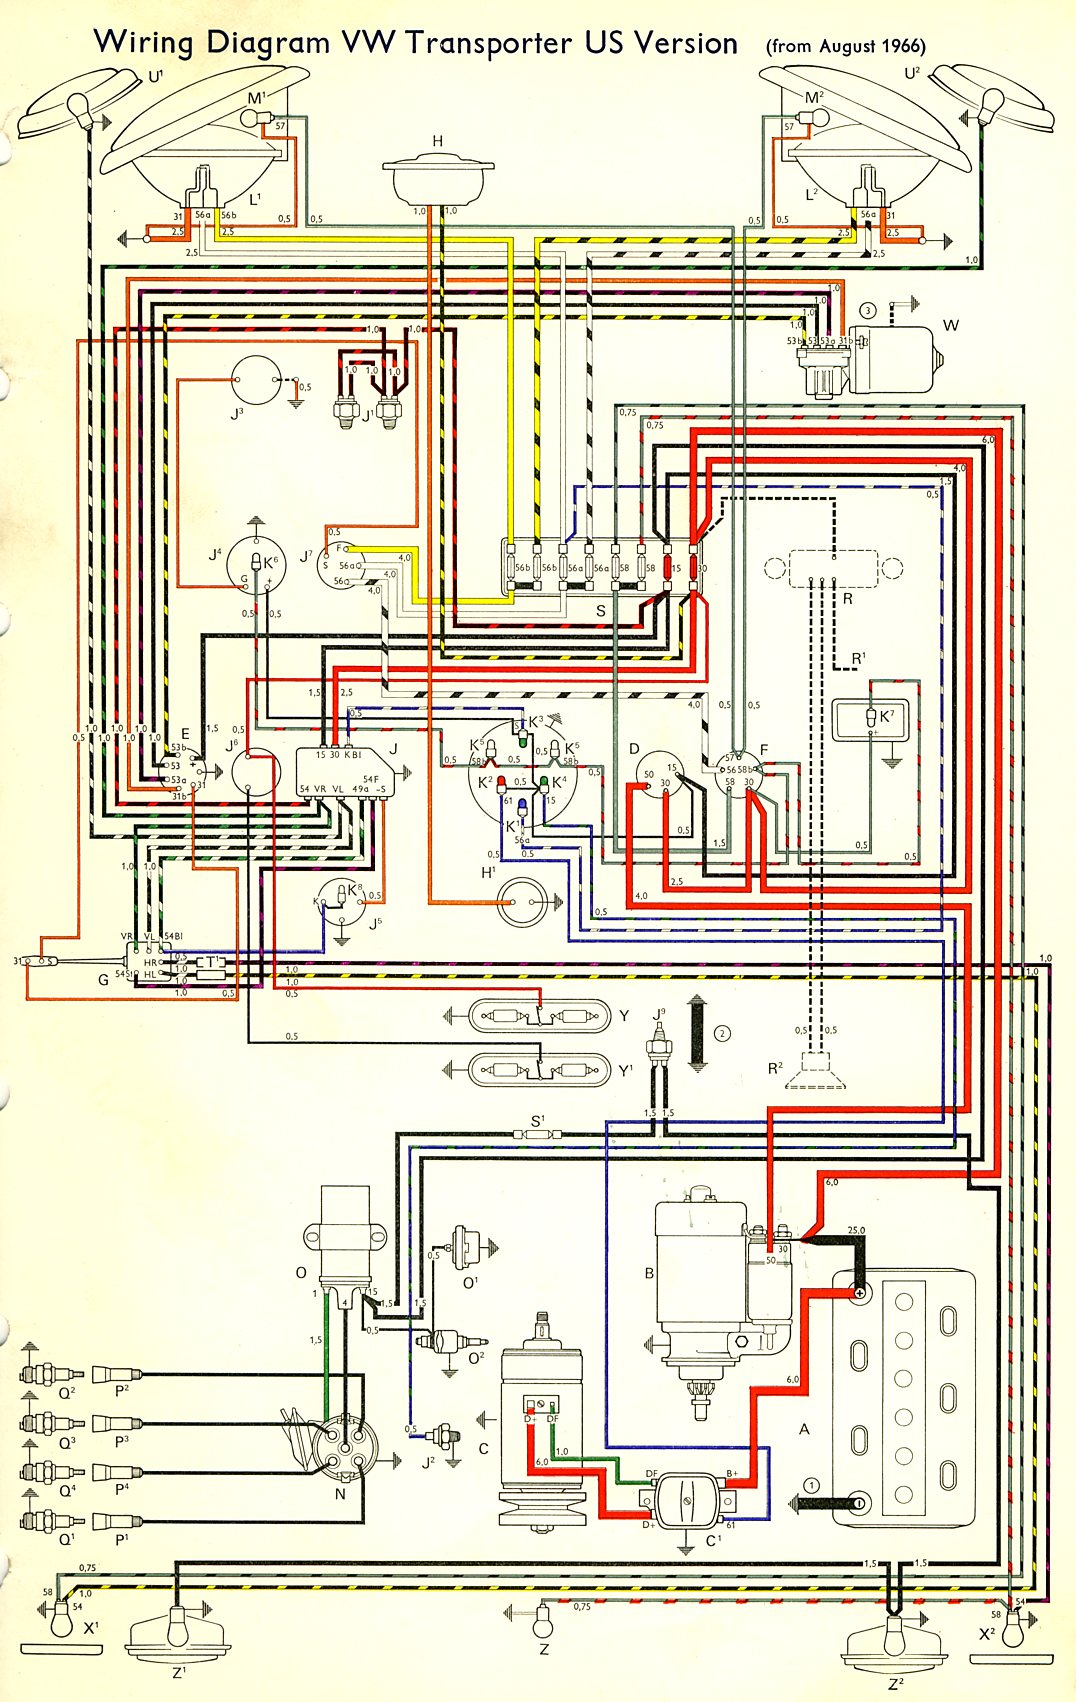 bus_67_USA 1967 bus wiring diagram (usa) thegoldenbug com 1971 vw bus wiring diagram at gsmportal.co